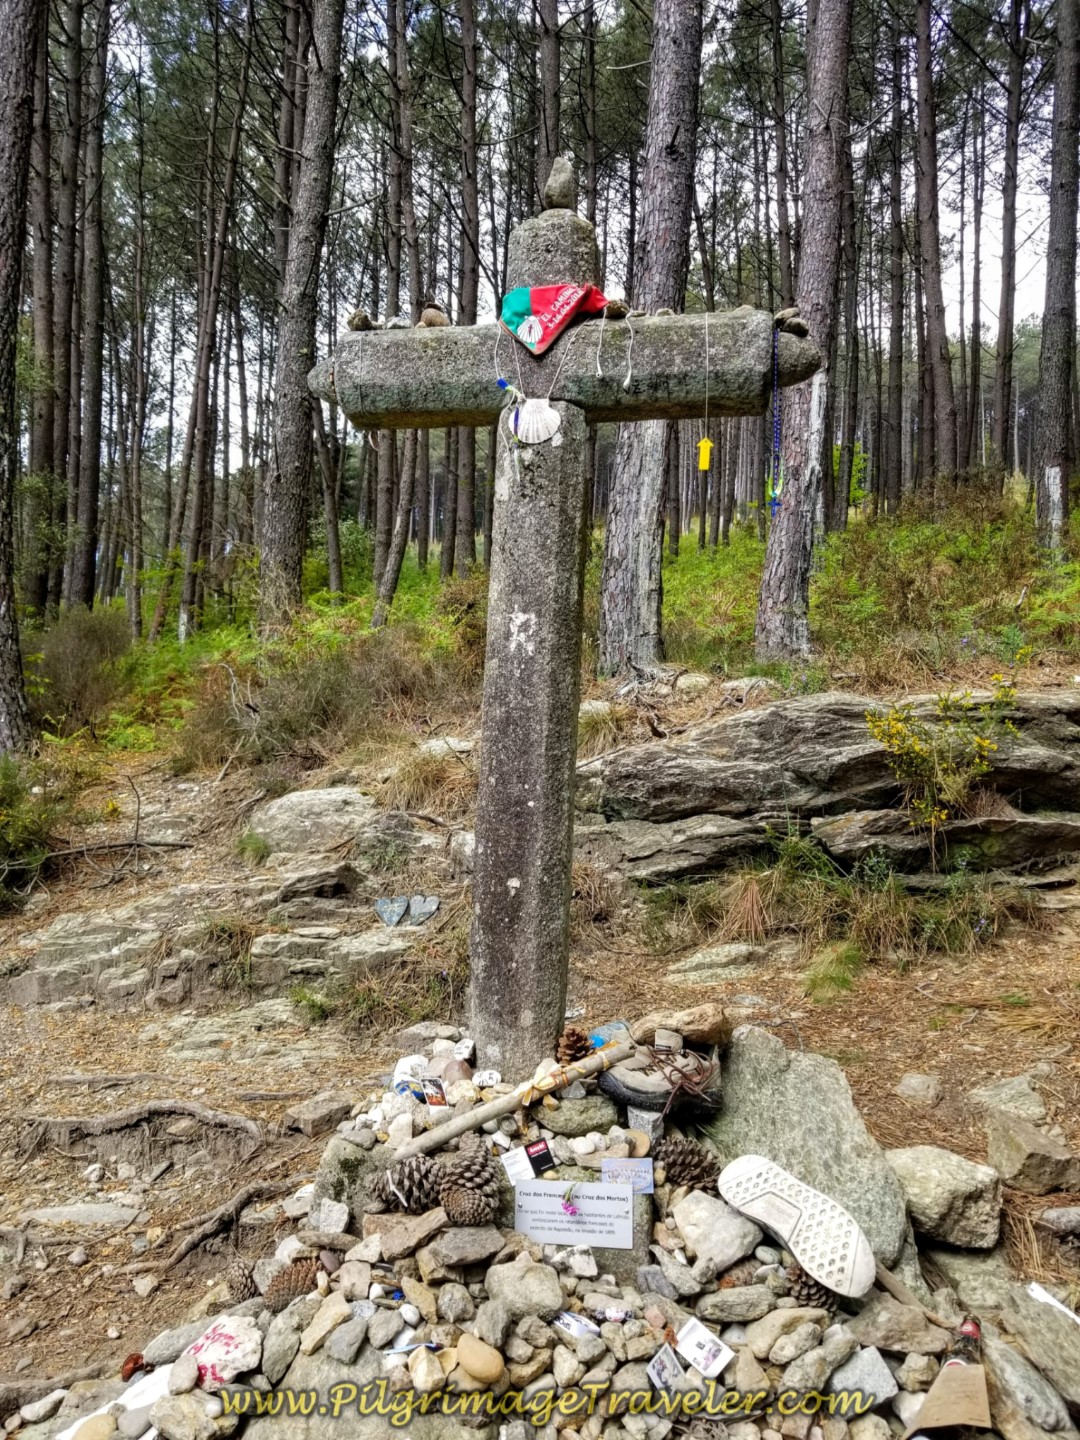 The Cruz dos Franceses (the French Cross),    on day eighteen on the Central Route of the Portuguese Camino. This cross is the equivalent, I suppose of the Cruz de Ferro on the Camino Francés.